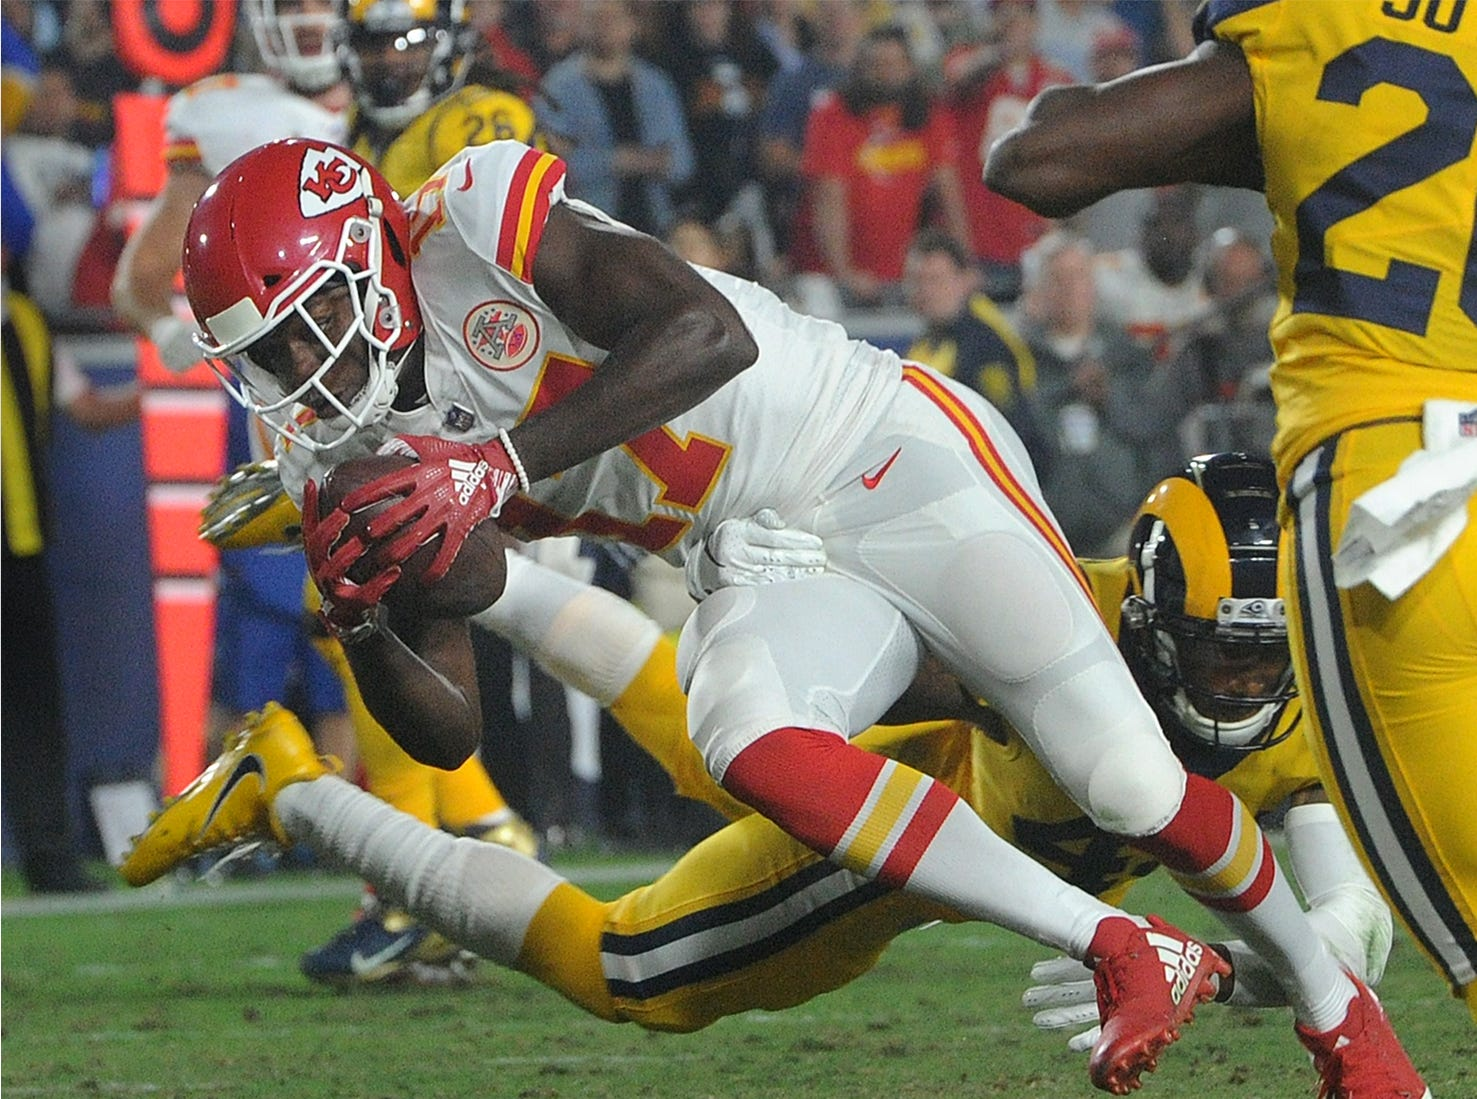 The Chiefs' Chris Conley (17) gains yardage adfter a pass reception on Monday against the Rams at the Coliseum.